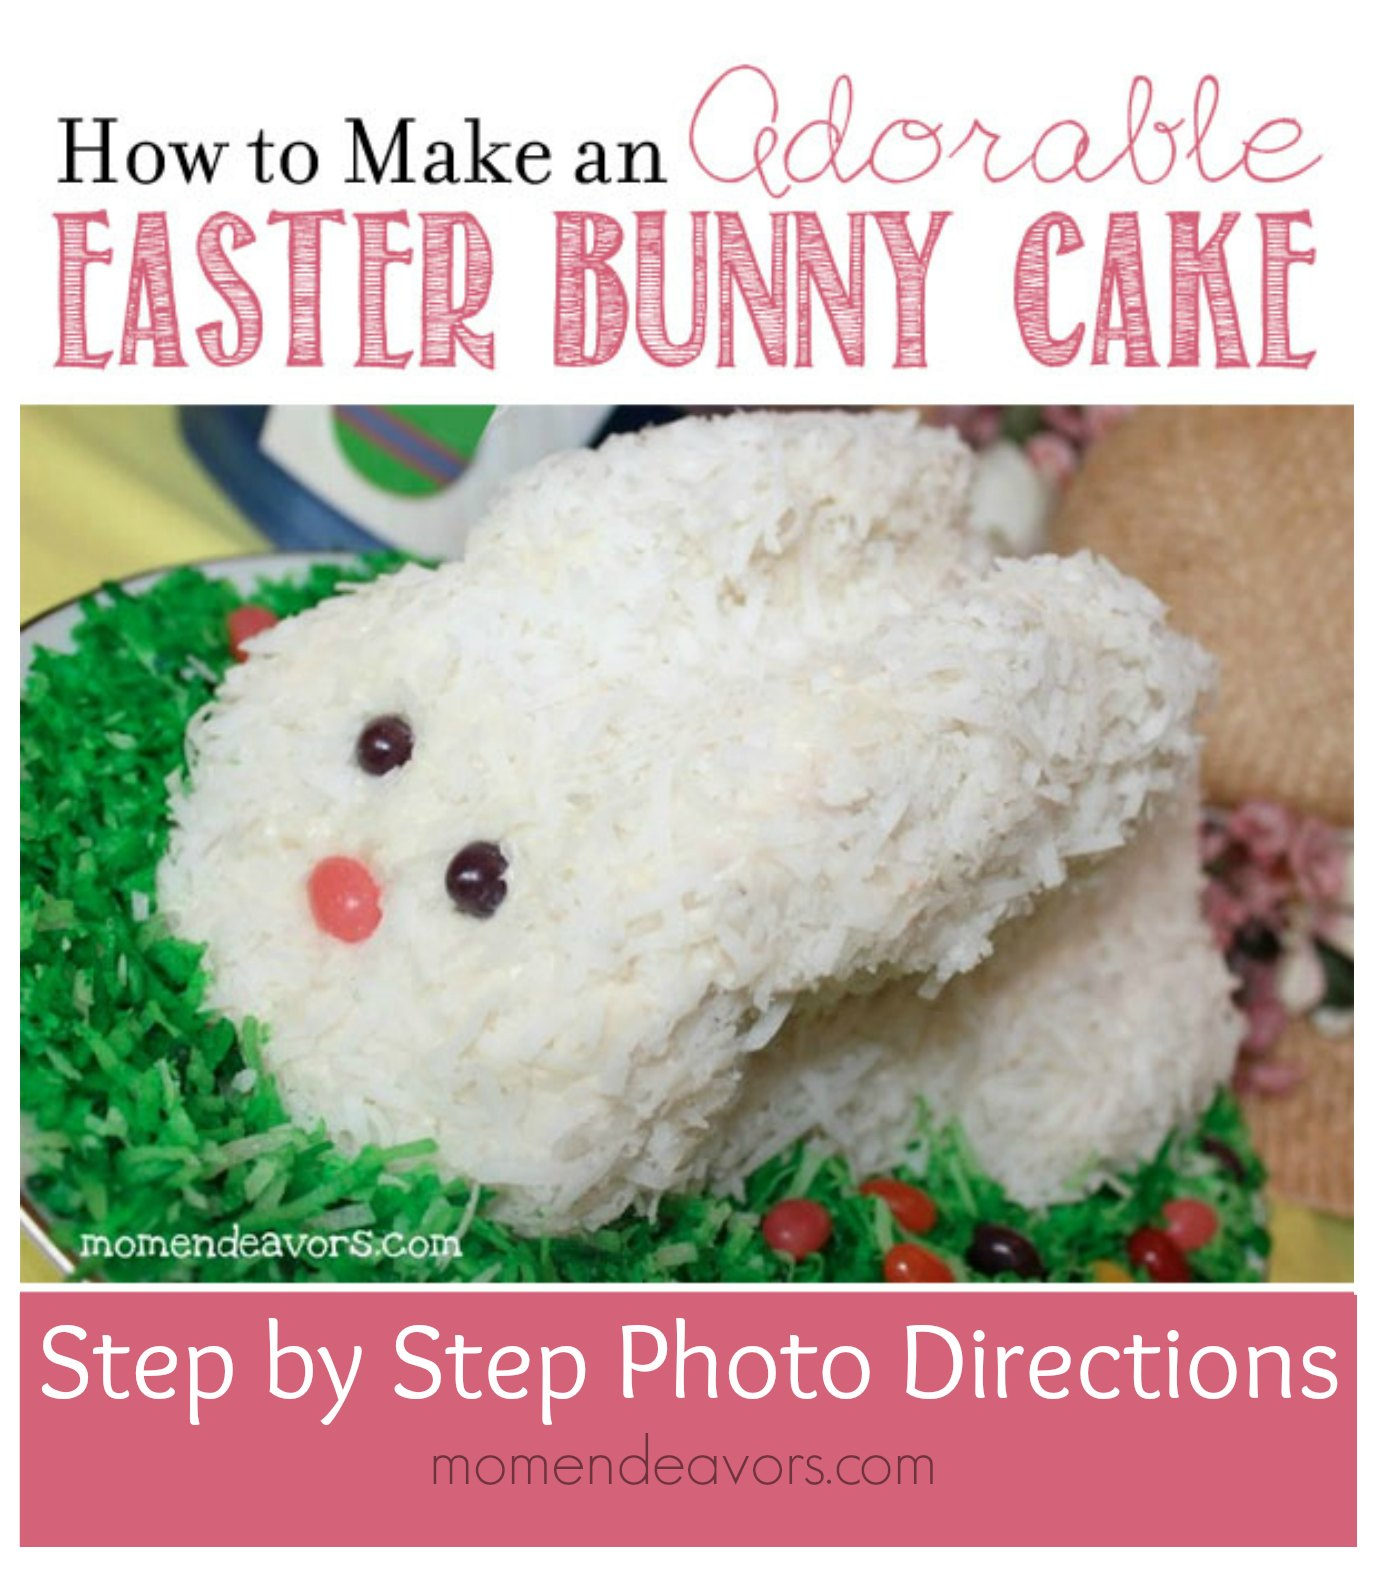 Easter Bunny Cake Tutorial